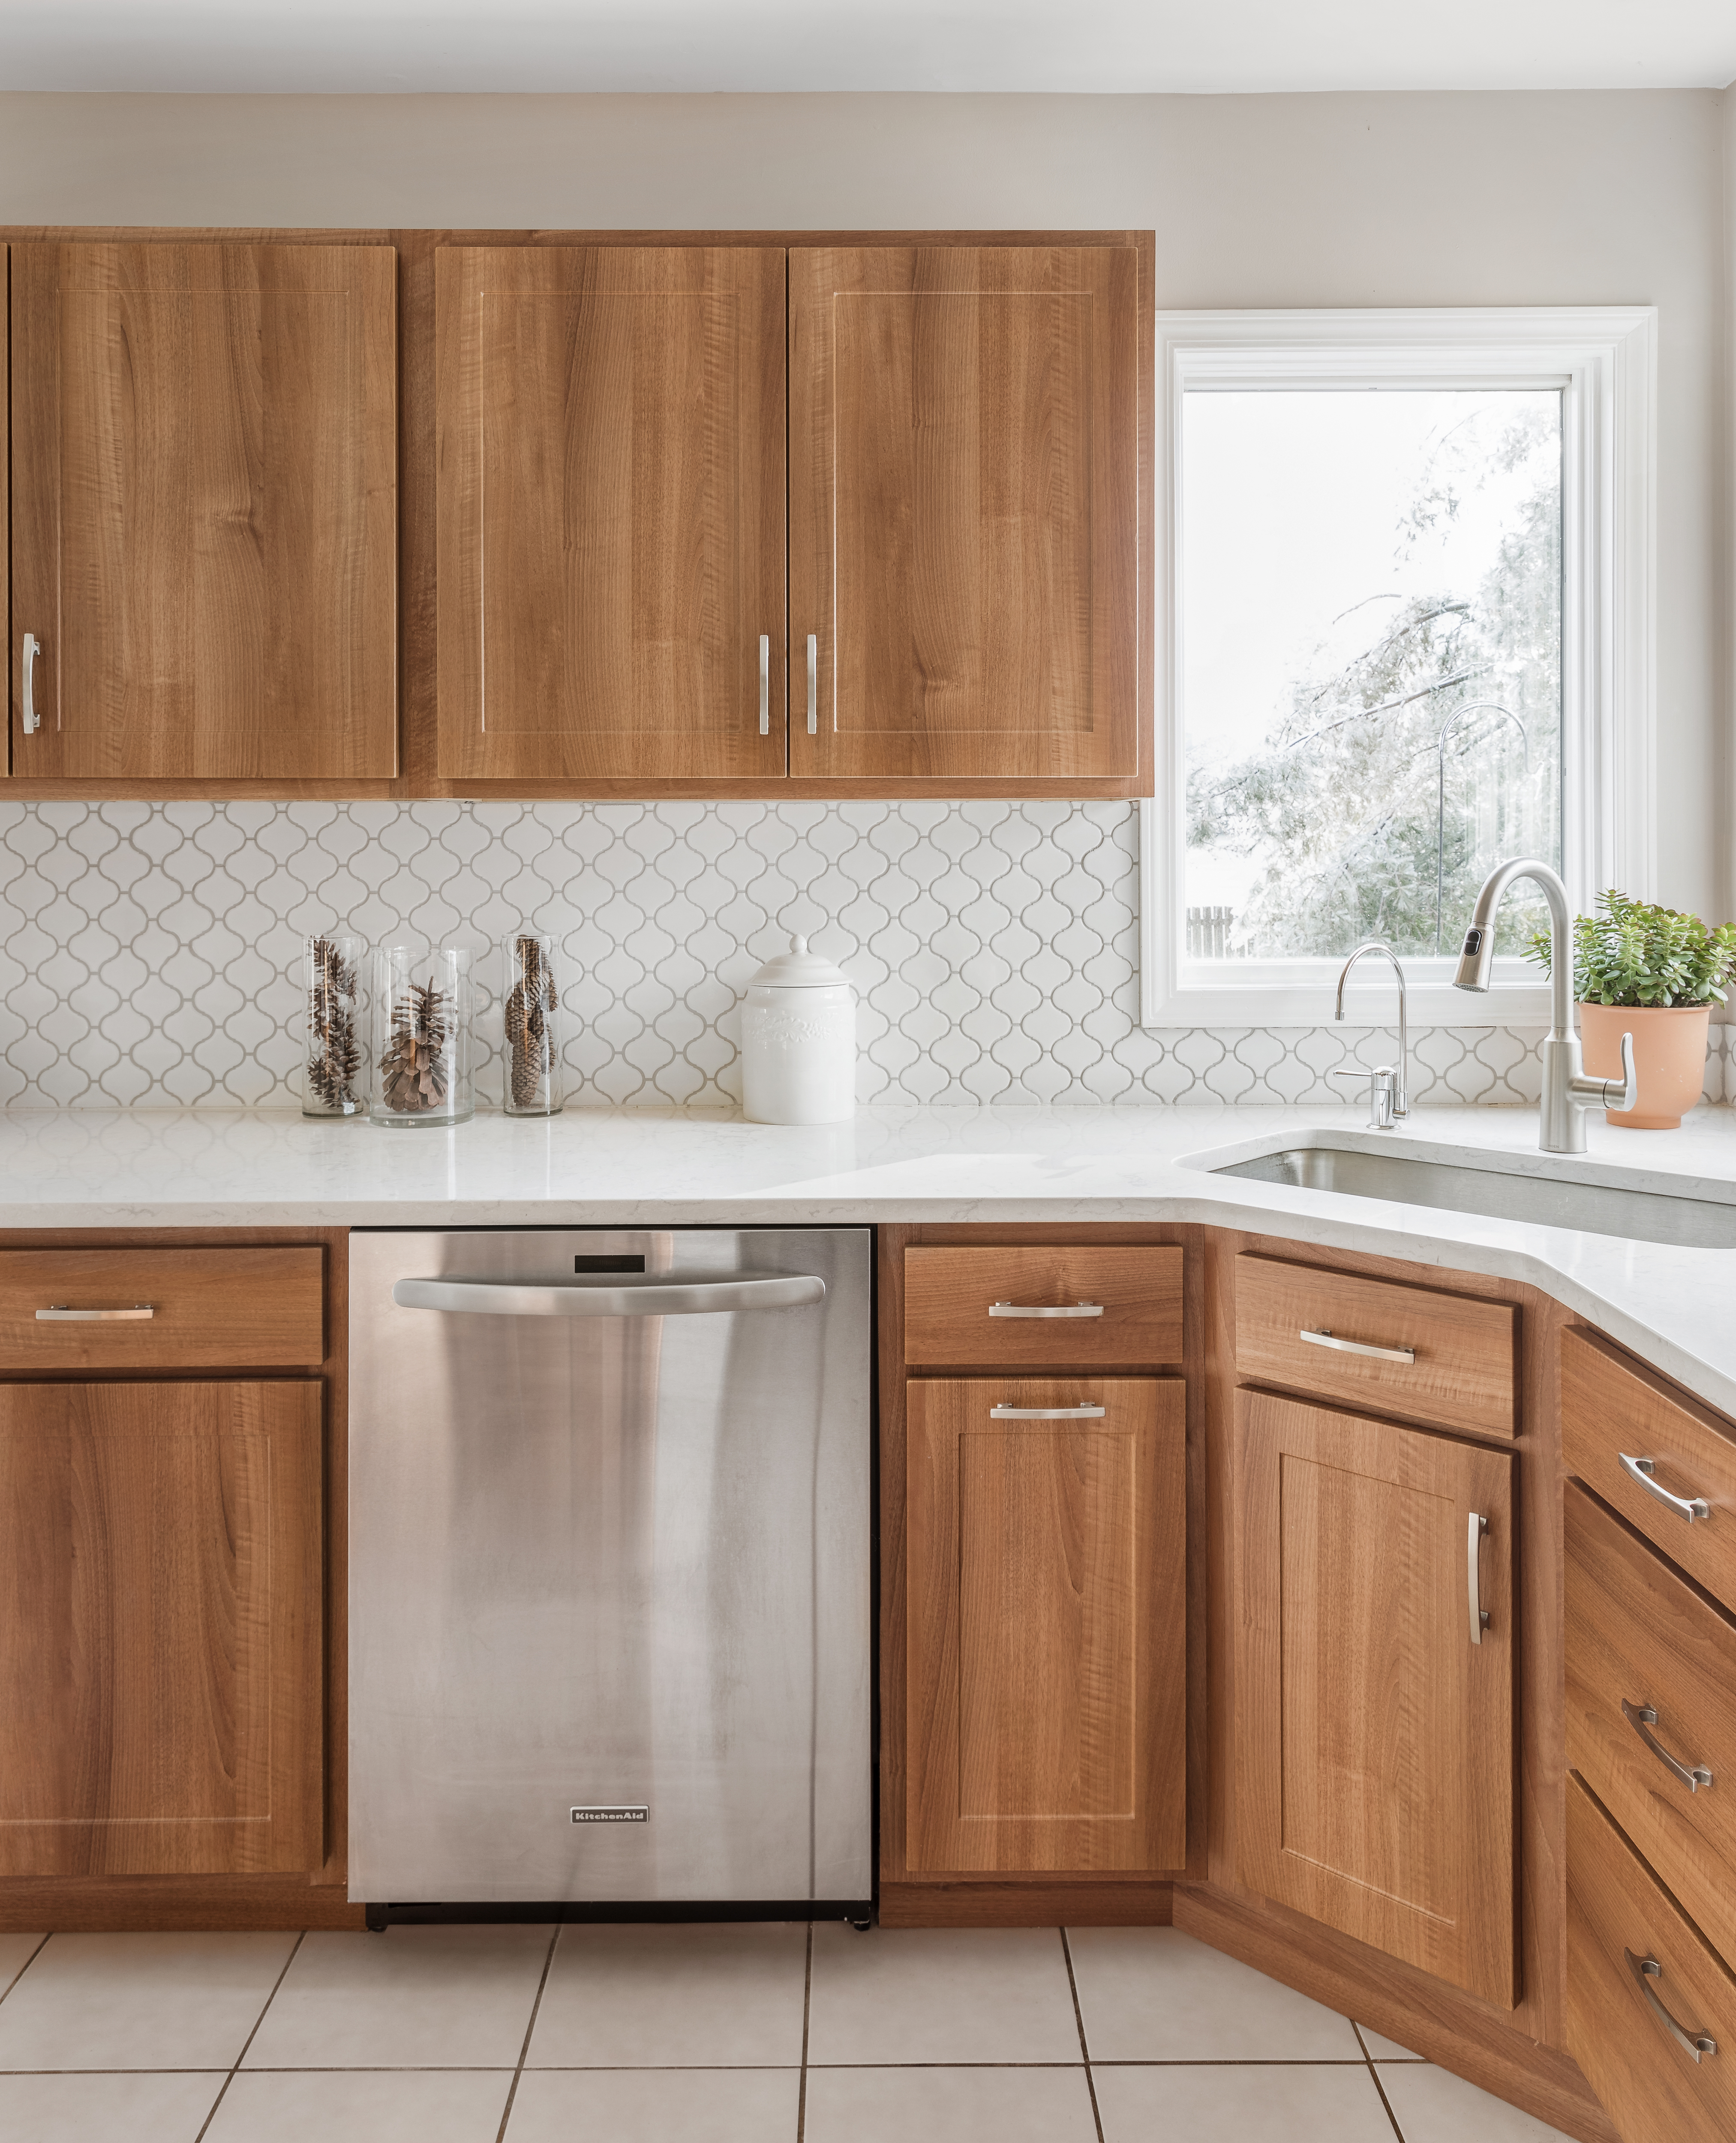 Wood inspired Cabinet Refacing